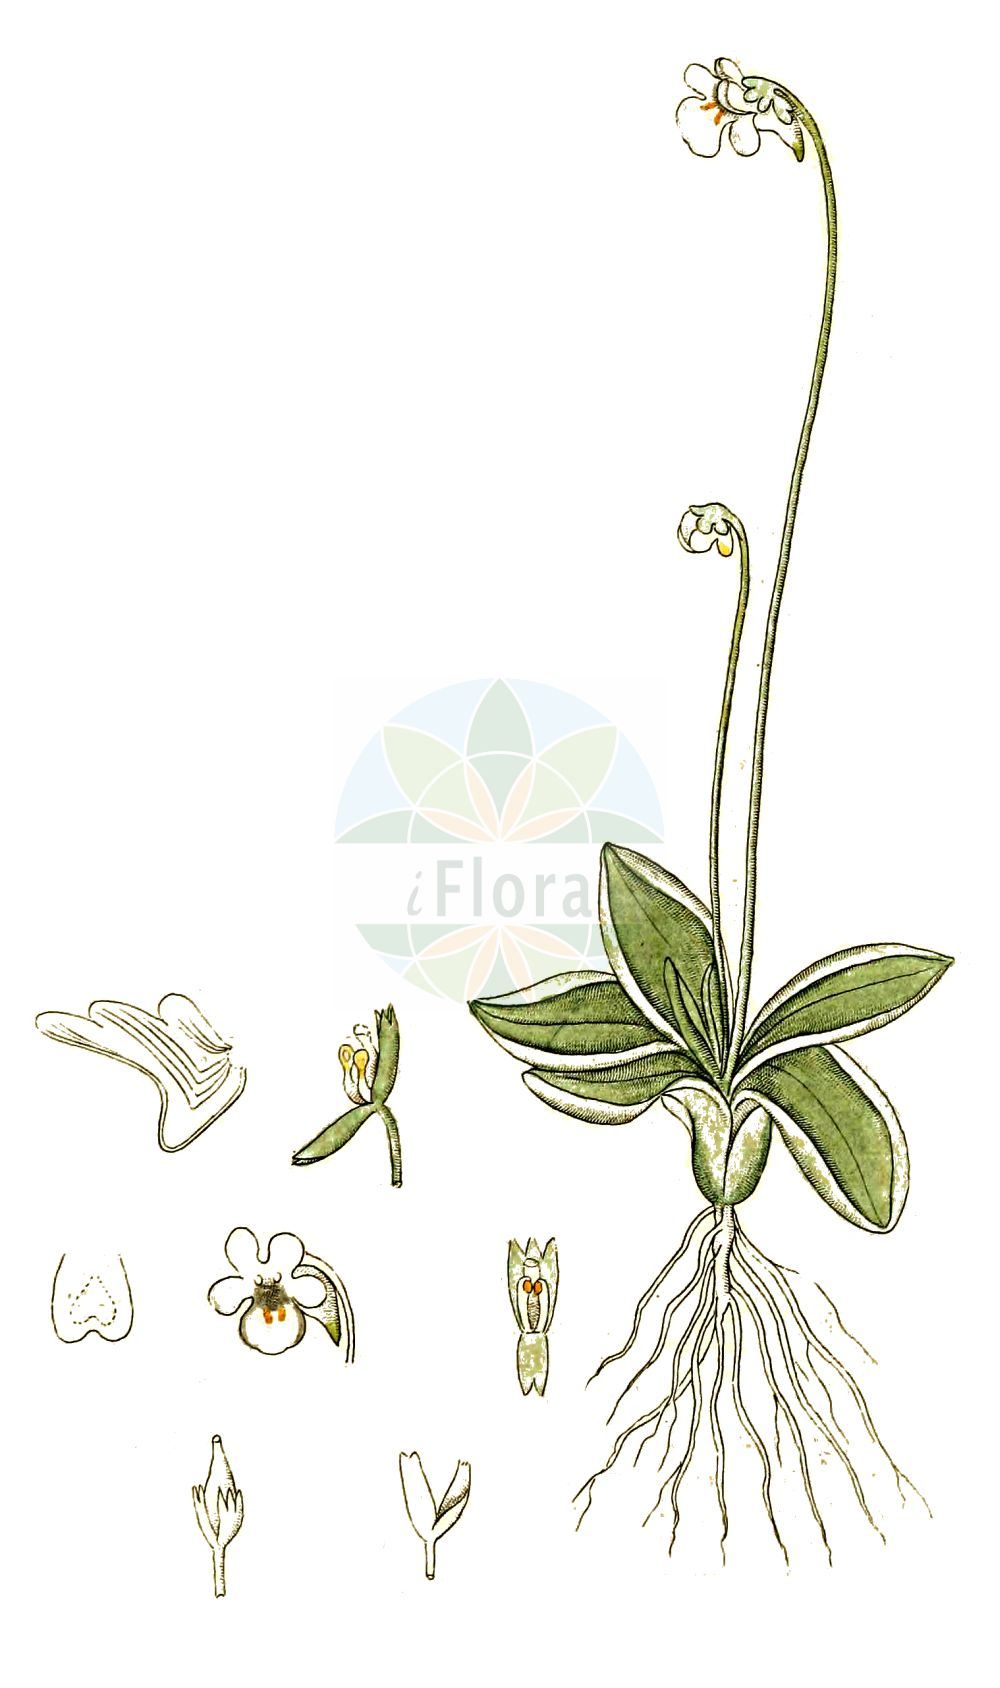 Historische Abbildung von Pinguicula alpina (Alpen-Fettkraut - Alpine Butterwort). Das Bild zeigt Blatt, Bluete, Frucht und Same. ---- Historical Drawing of Pinguicula alpina (Alpen-Fettkraut - Alpine Butterwort).The image is showing leaf, flower, fruit and seed.(Pinguicula alpina,Alpen-Fettkraut,Alpine Butterwort,Pinguicula alpina,Pinguicula alpina subsp. gavei,Alpen-Fettkraut,Alpine Butterwort,Pinguicula,Fettkraut,Butterwort,Lentibulariaceae,Wasserschlauchgewaechse,Bladderwort family,Blatt,Bluete,Frucht,Same,leaf,flower,fruit,seed,Palmstruch (1807-1843))